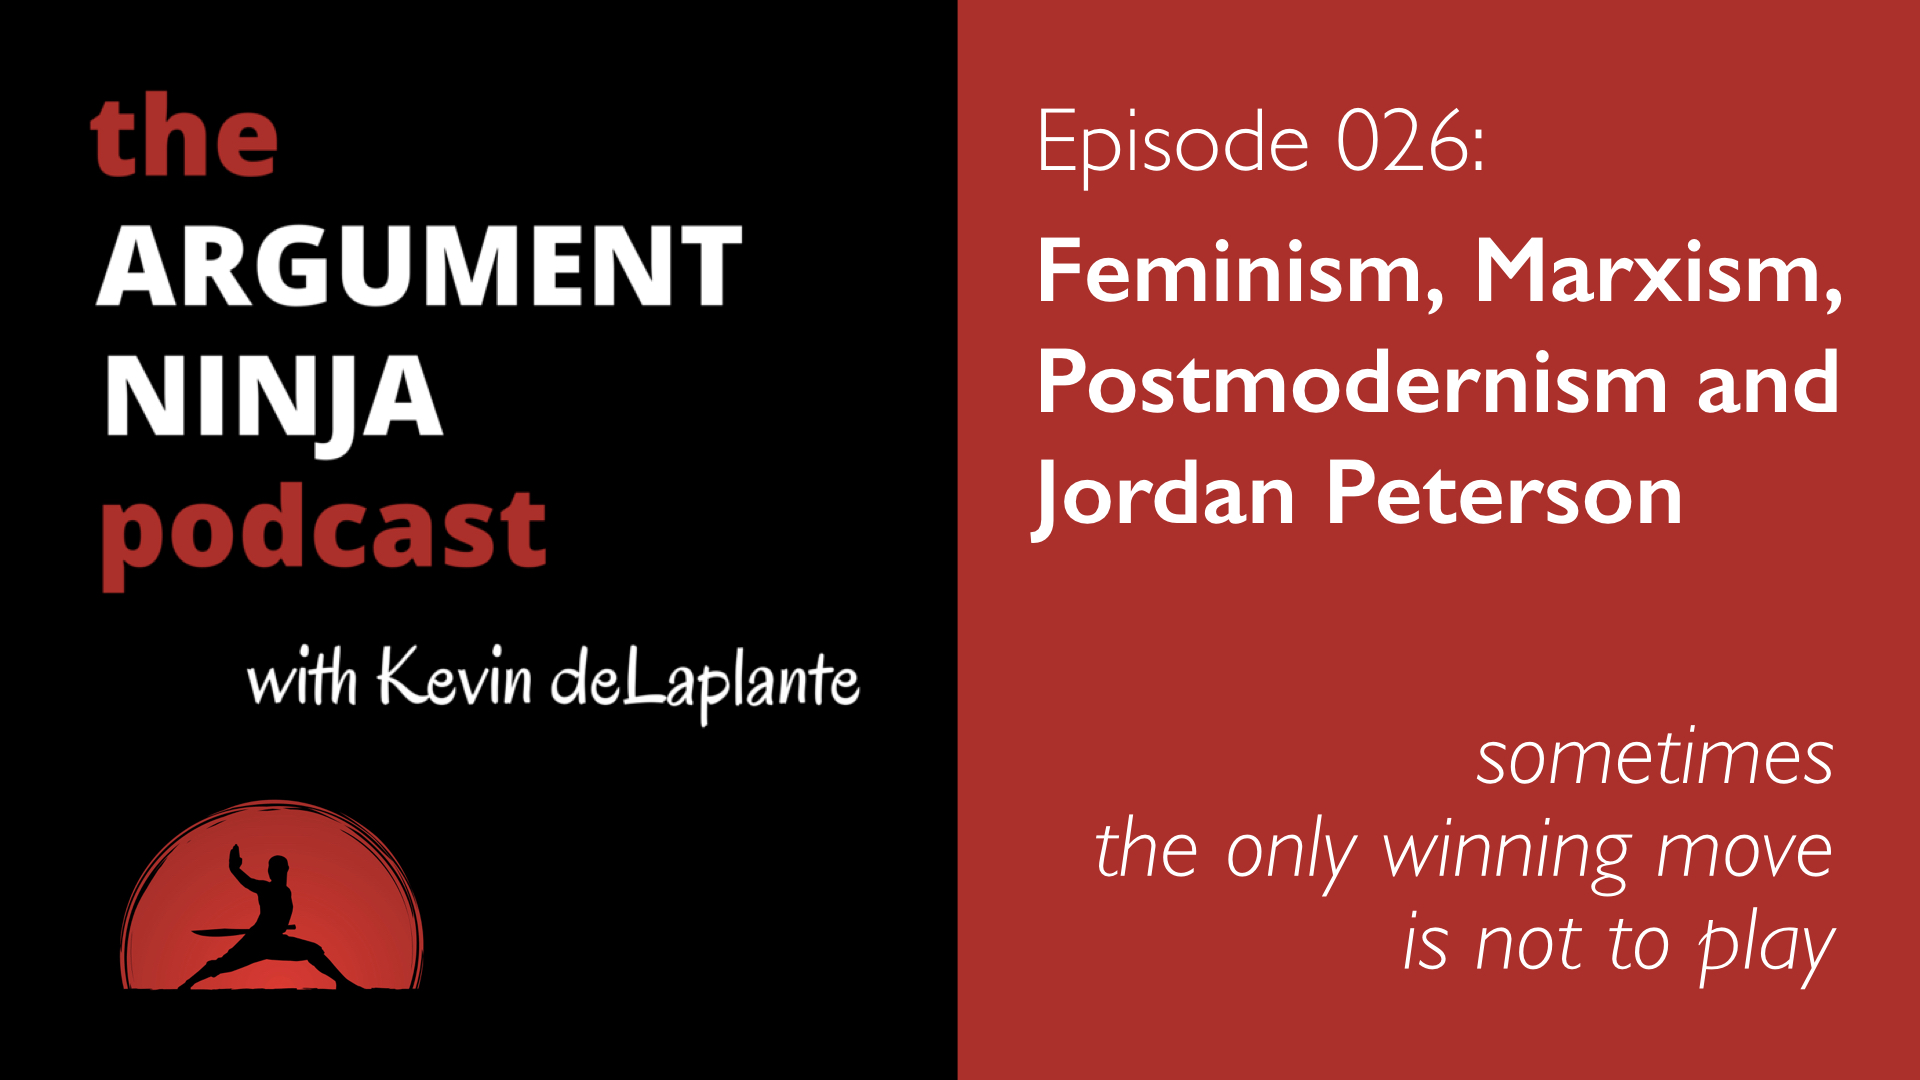 026 Feminism Marxism Postmodernism And Jordan Peterson